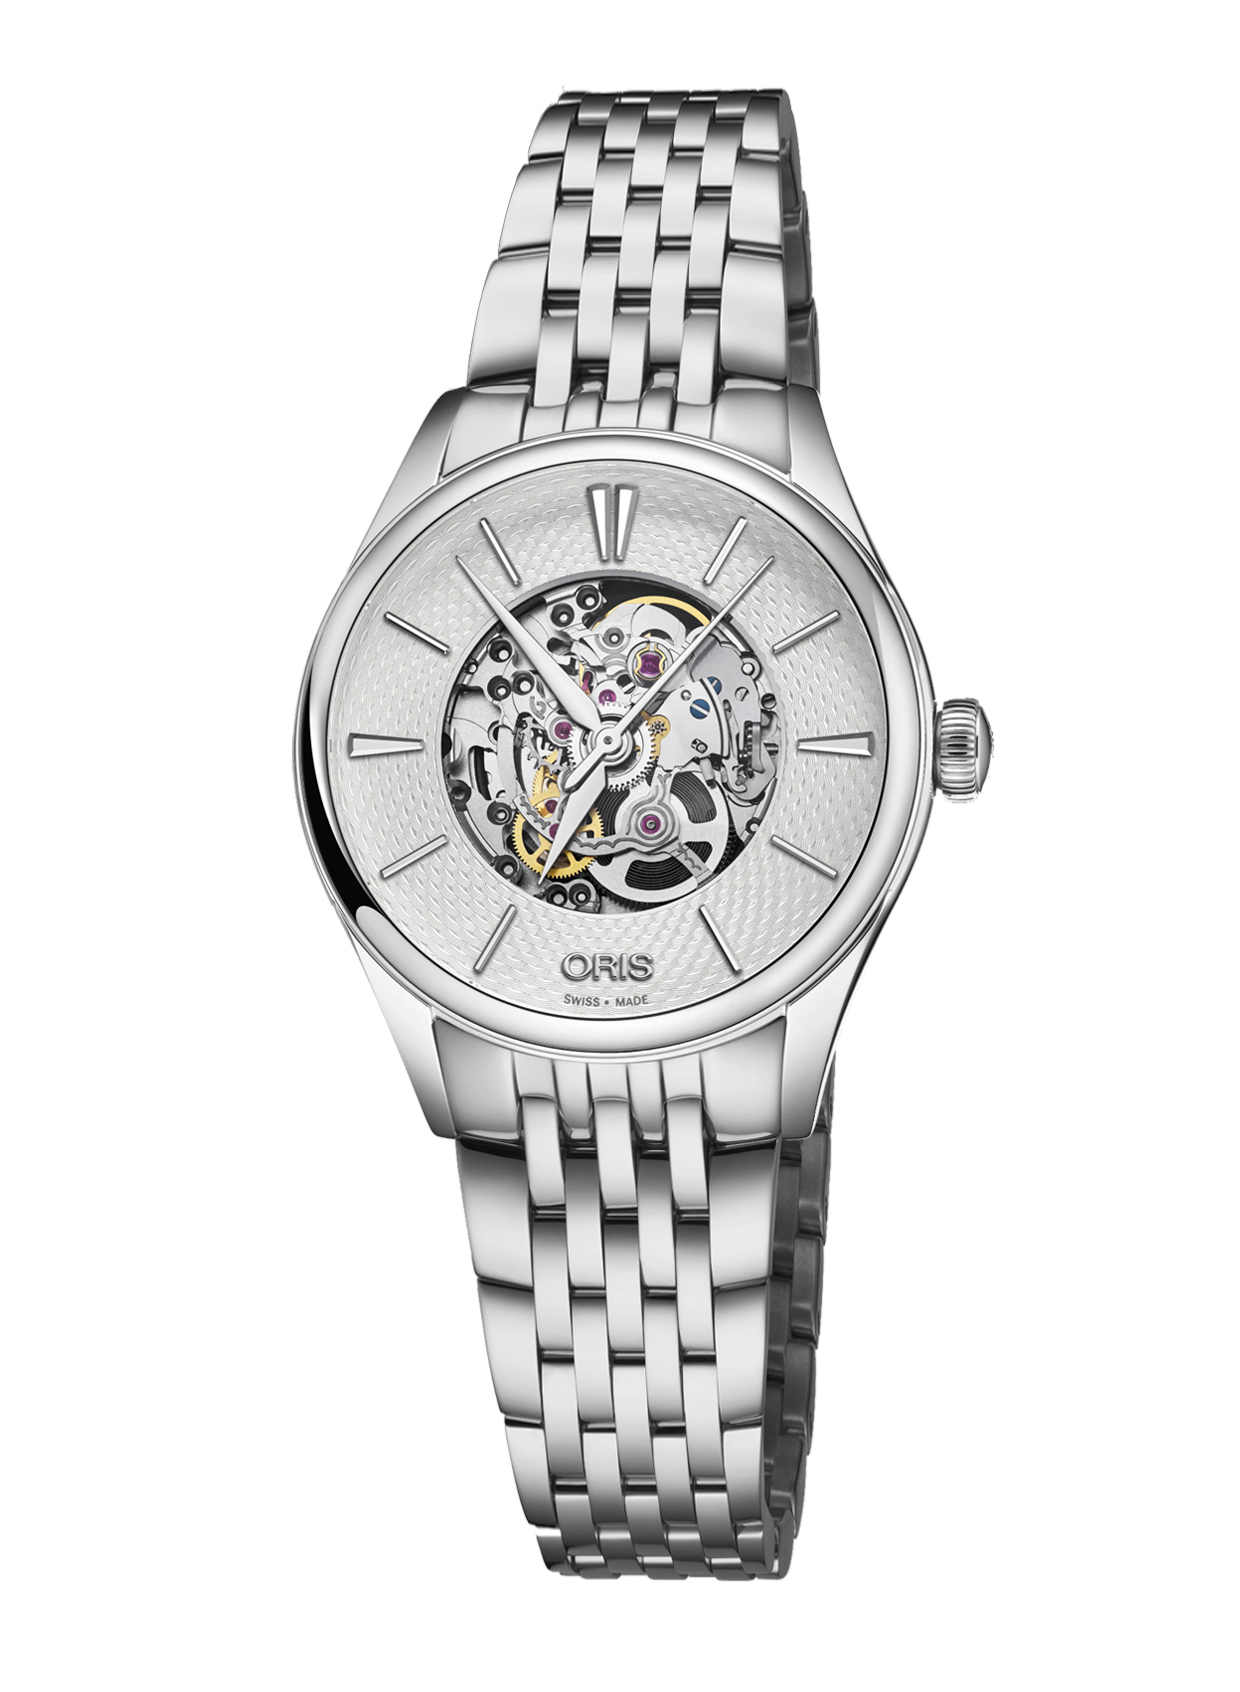 Часы Oris Culture Artelier Skeleton 560.7724.4051 MB 8.17.79